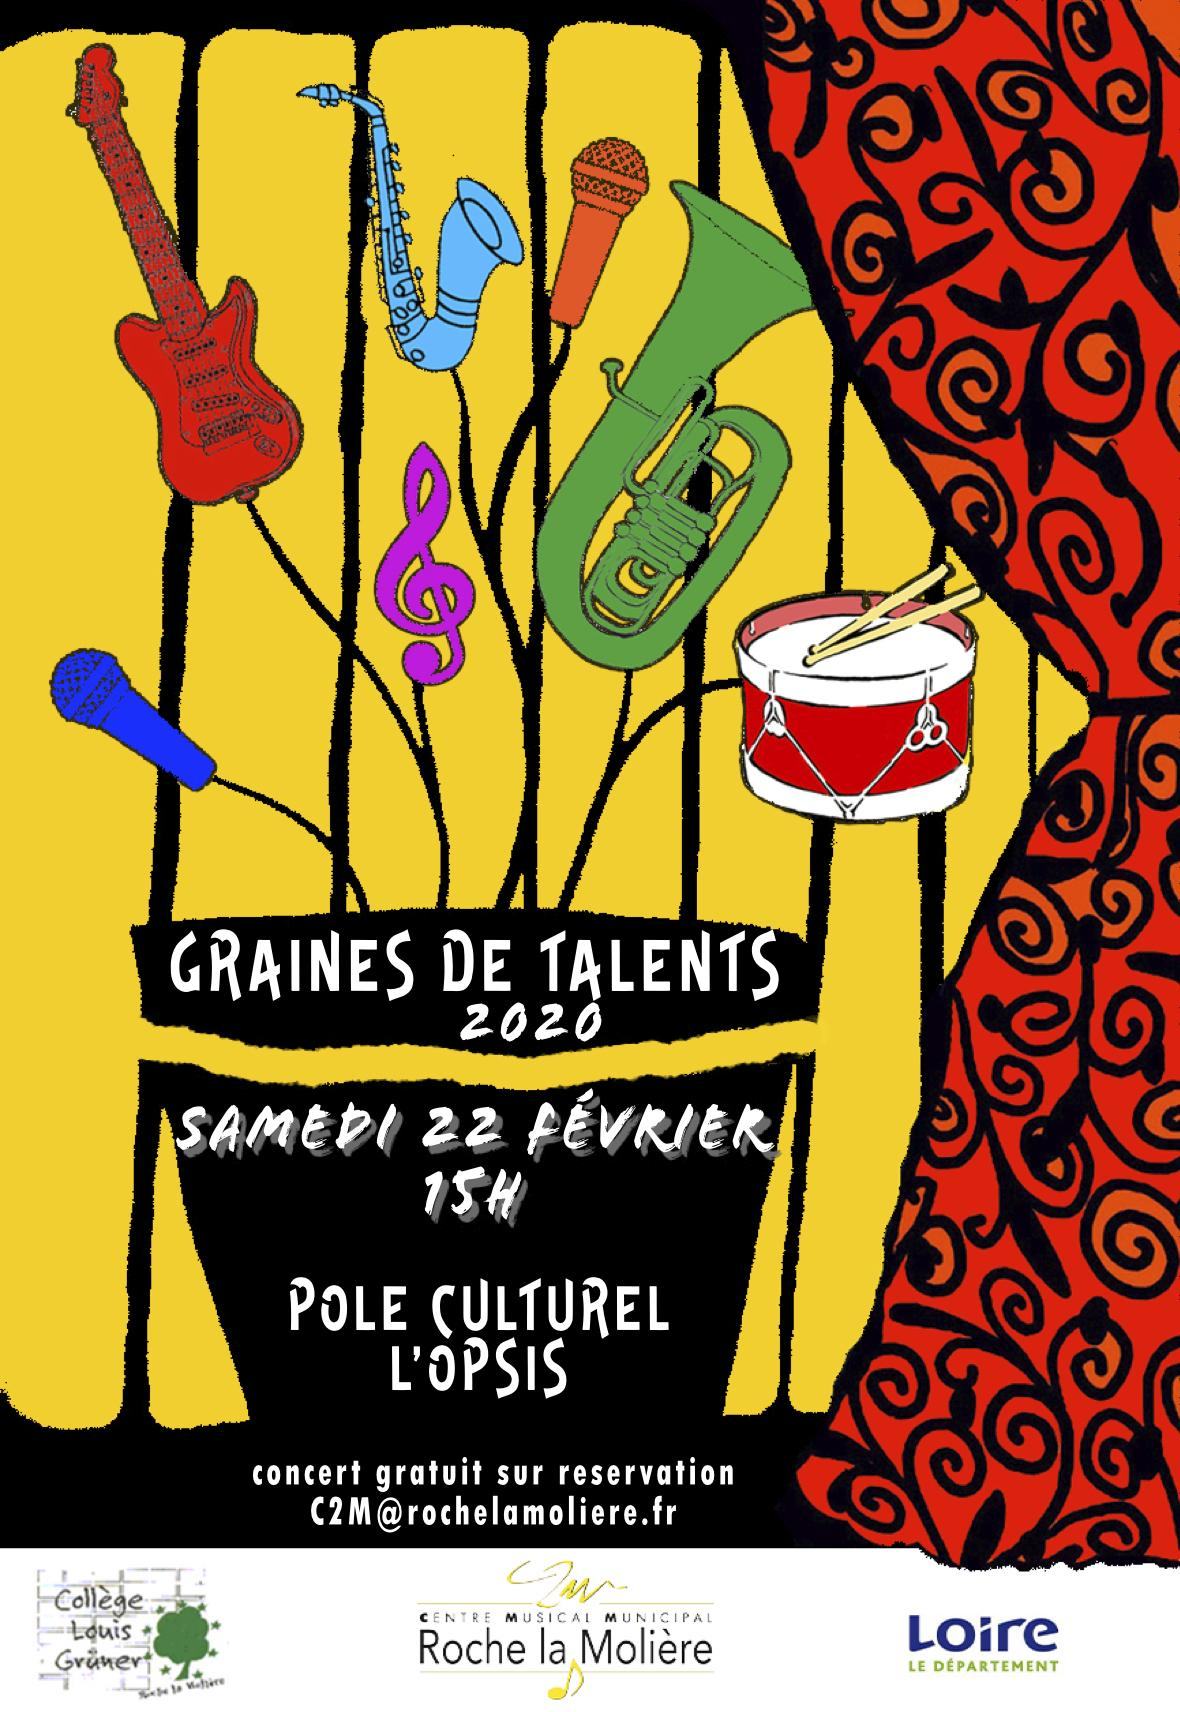 Graines 20de 20talents